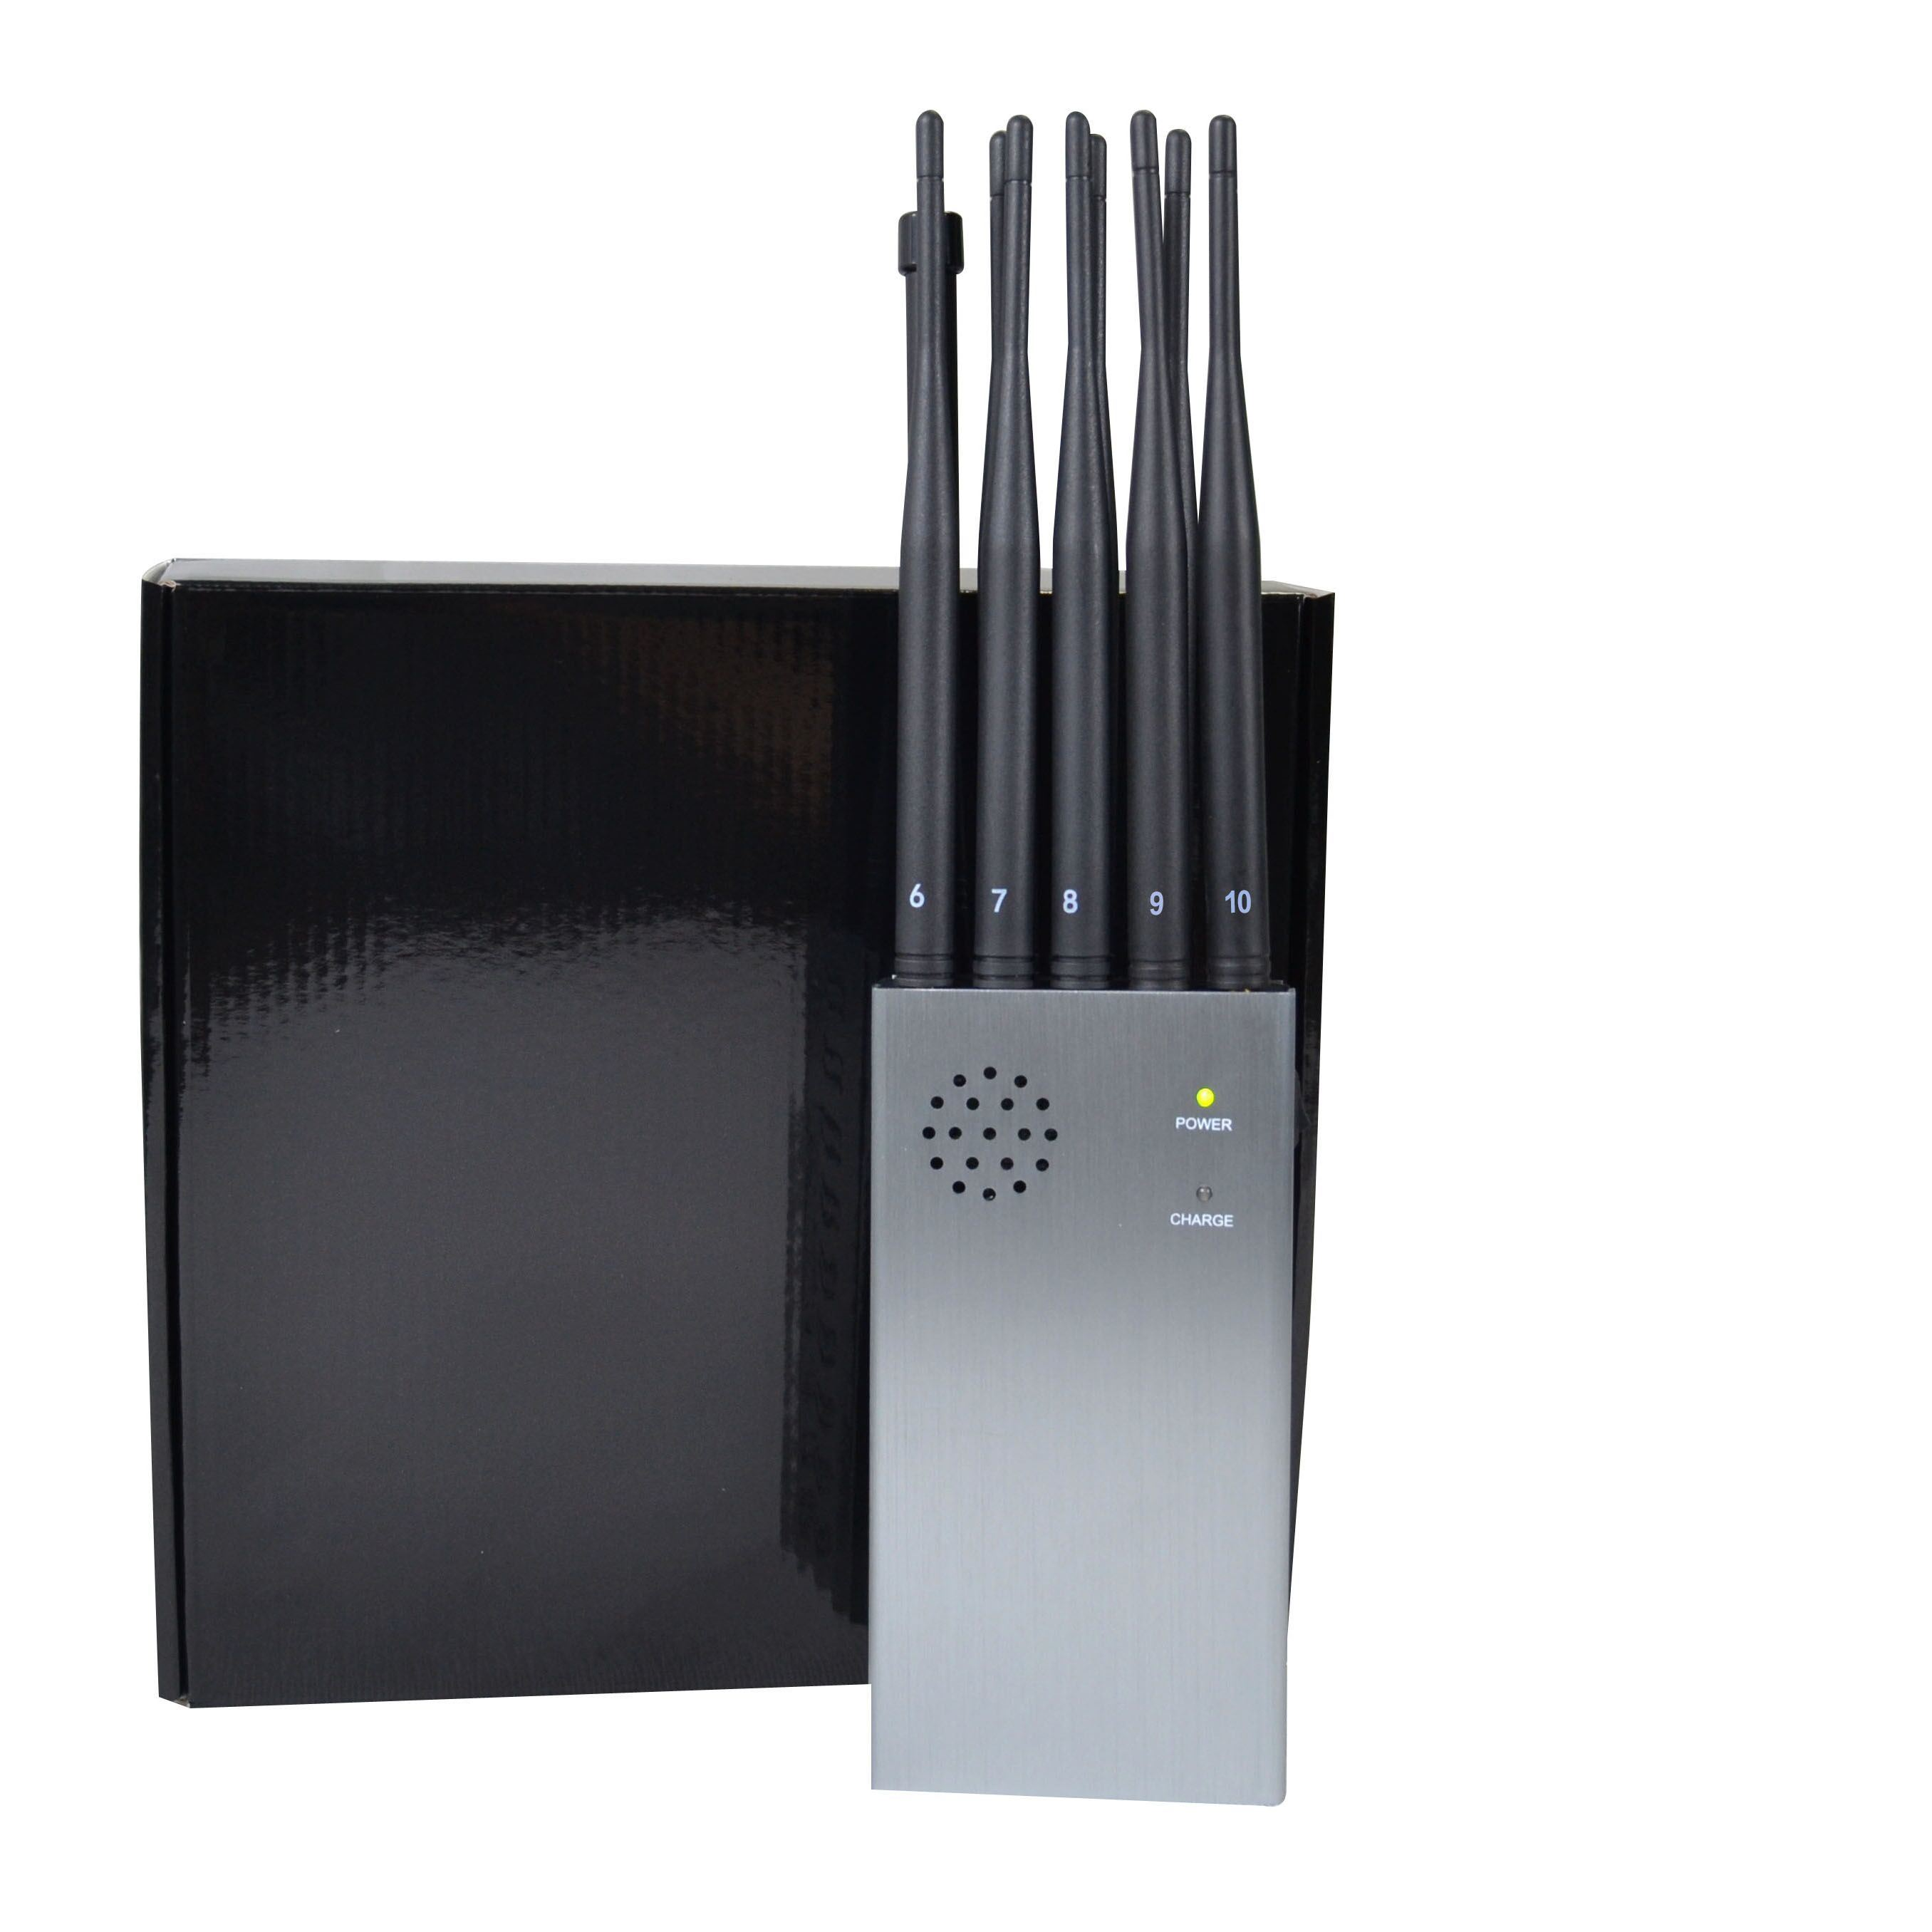 phone jammer florida keys - China Handled Portable Jammer with 10 Antennas Newest Model Updated Version with 8000mA - China 8000mA Battery Jammer, Large Volume Power Signal Blocker